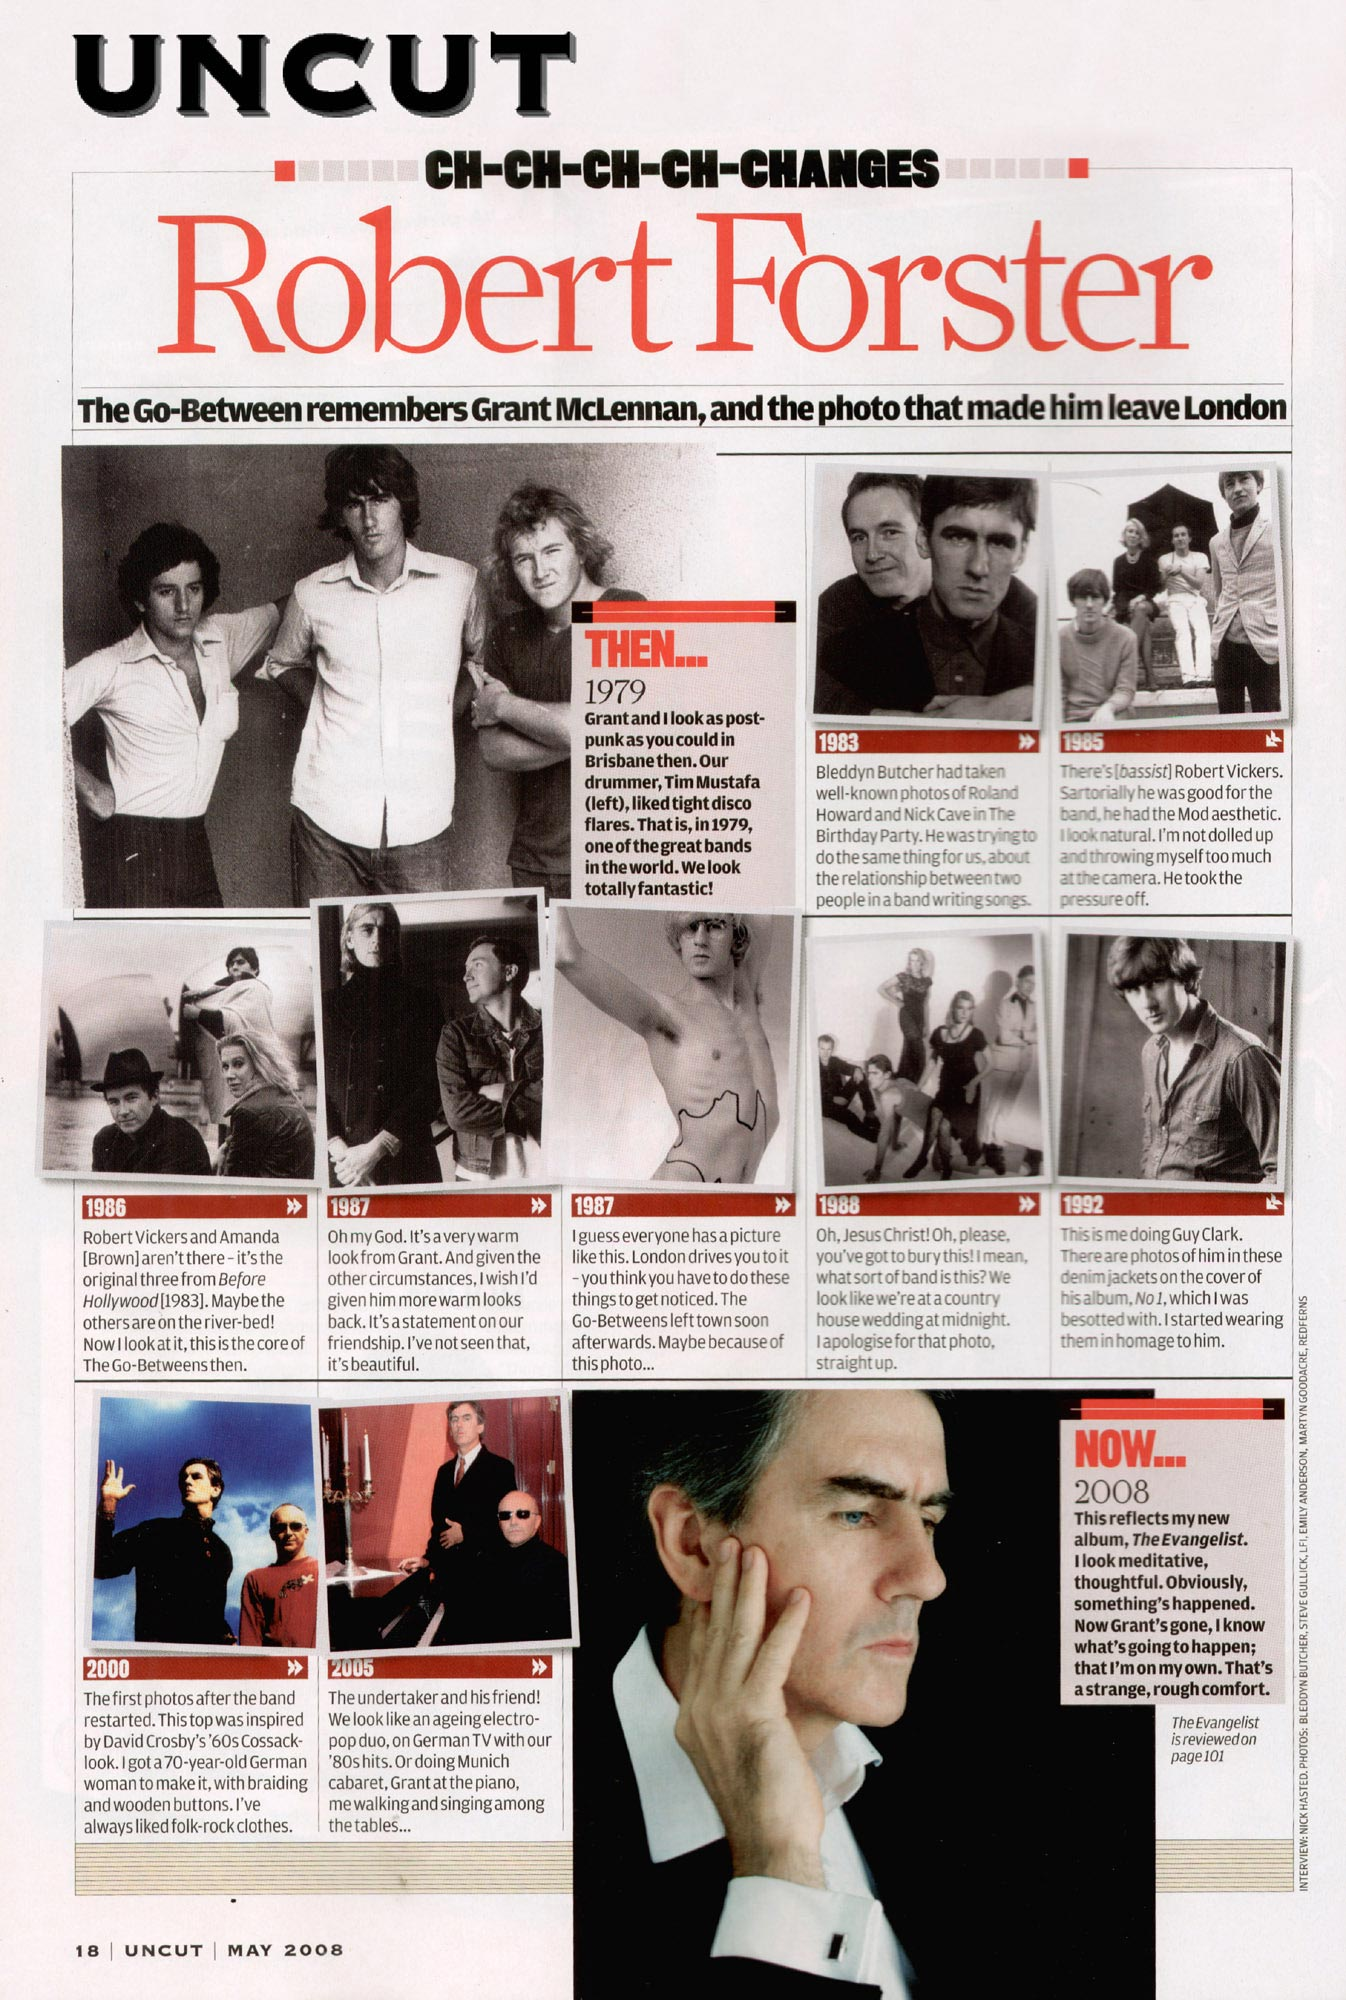 https://i2.wp.com/www.robertforster.net/otherpubs/articles/uncut_feature.jpg